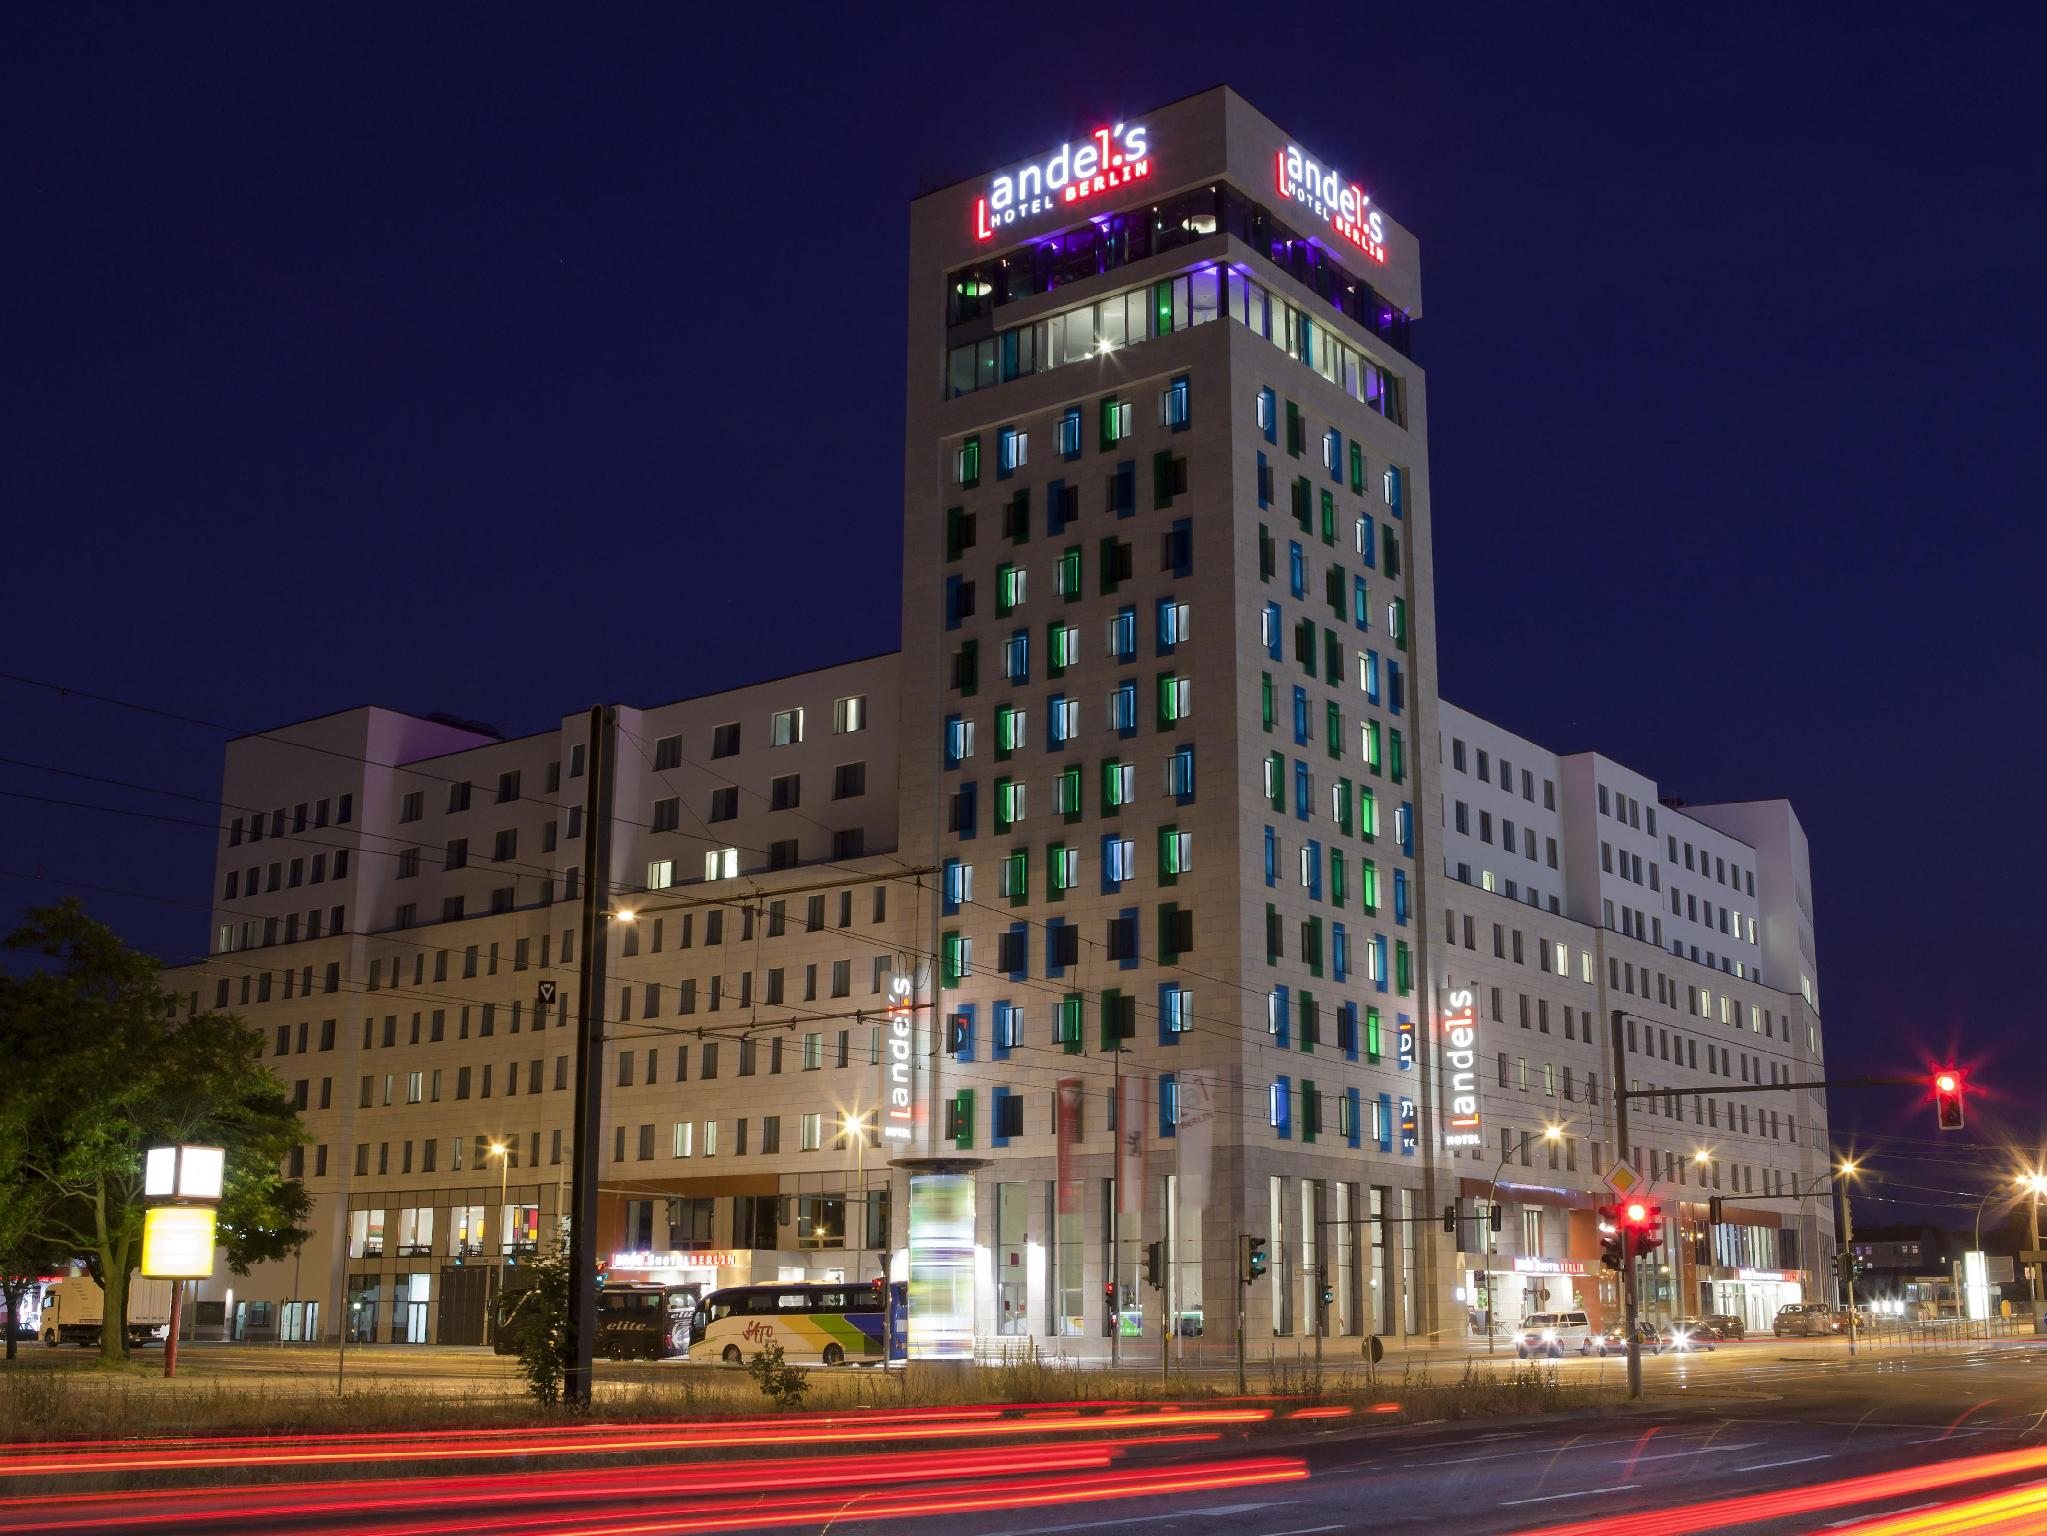 andel's Hotel Berlin, managed by Vienna International Hotels and Resorts Berlino - Vista/Panorama